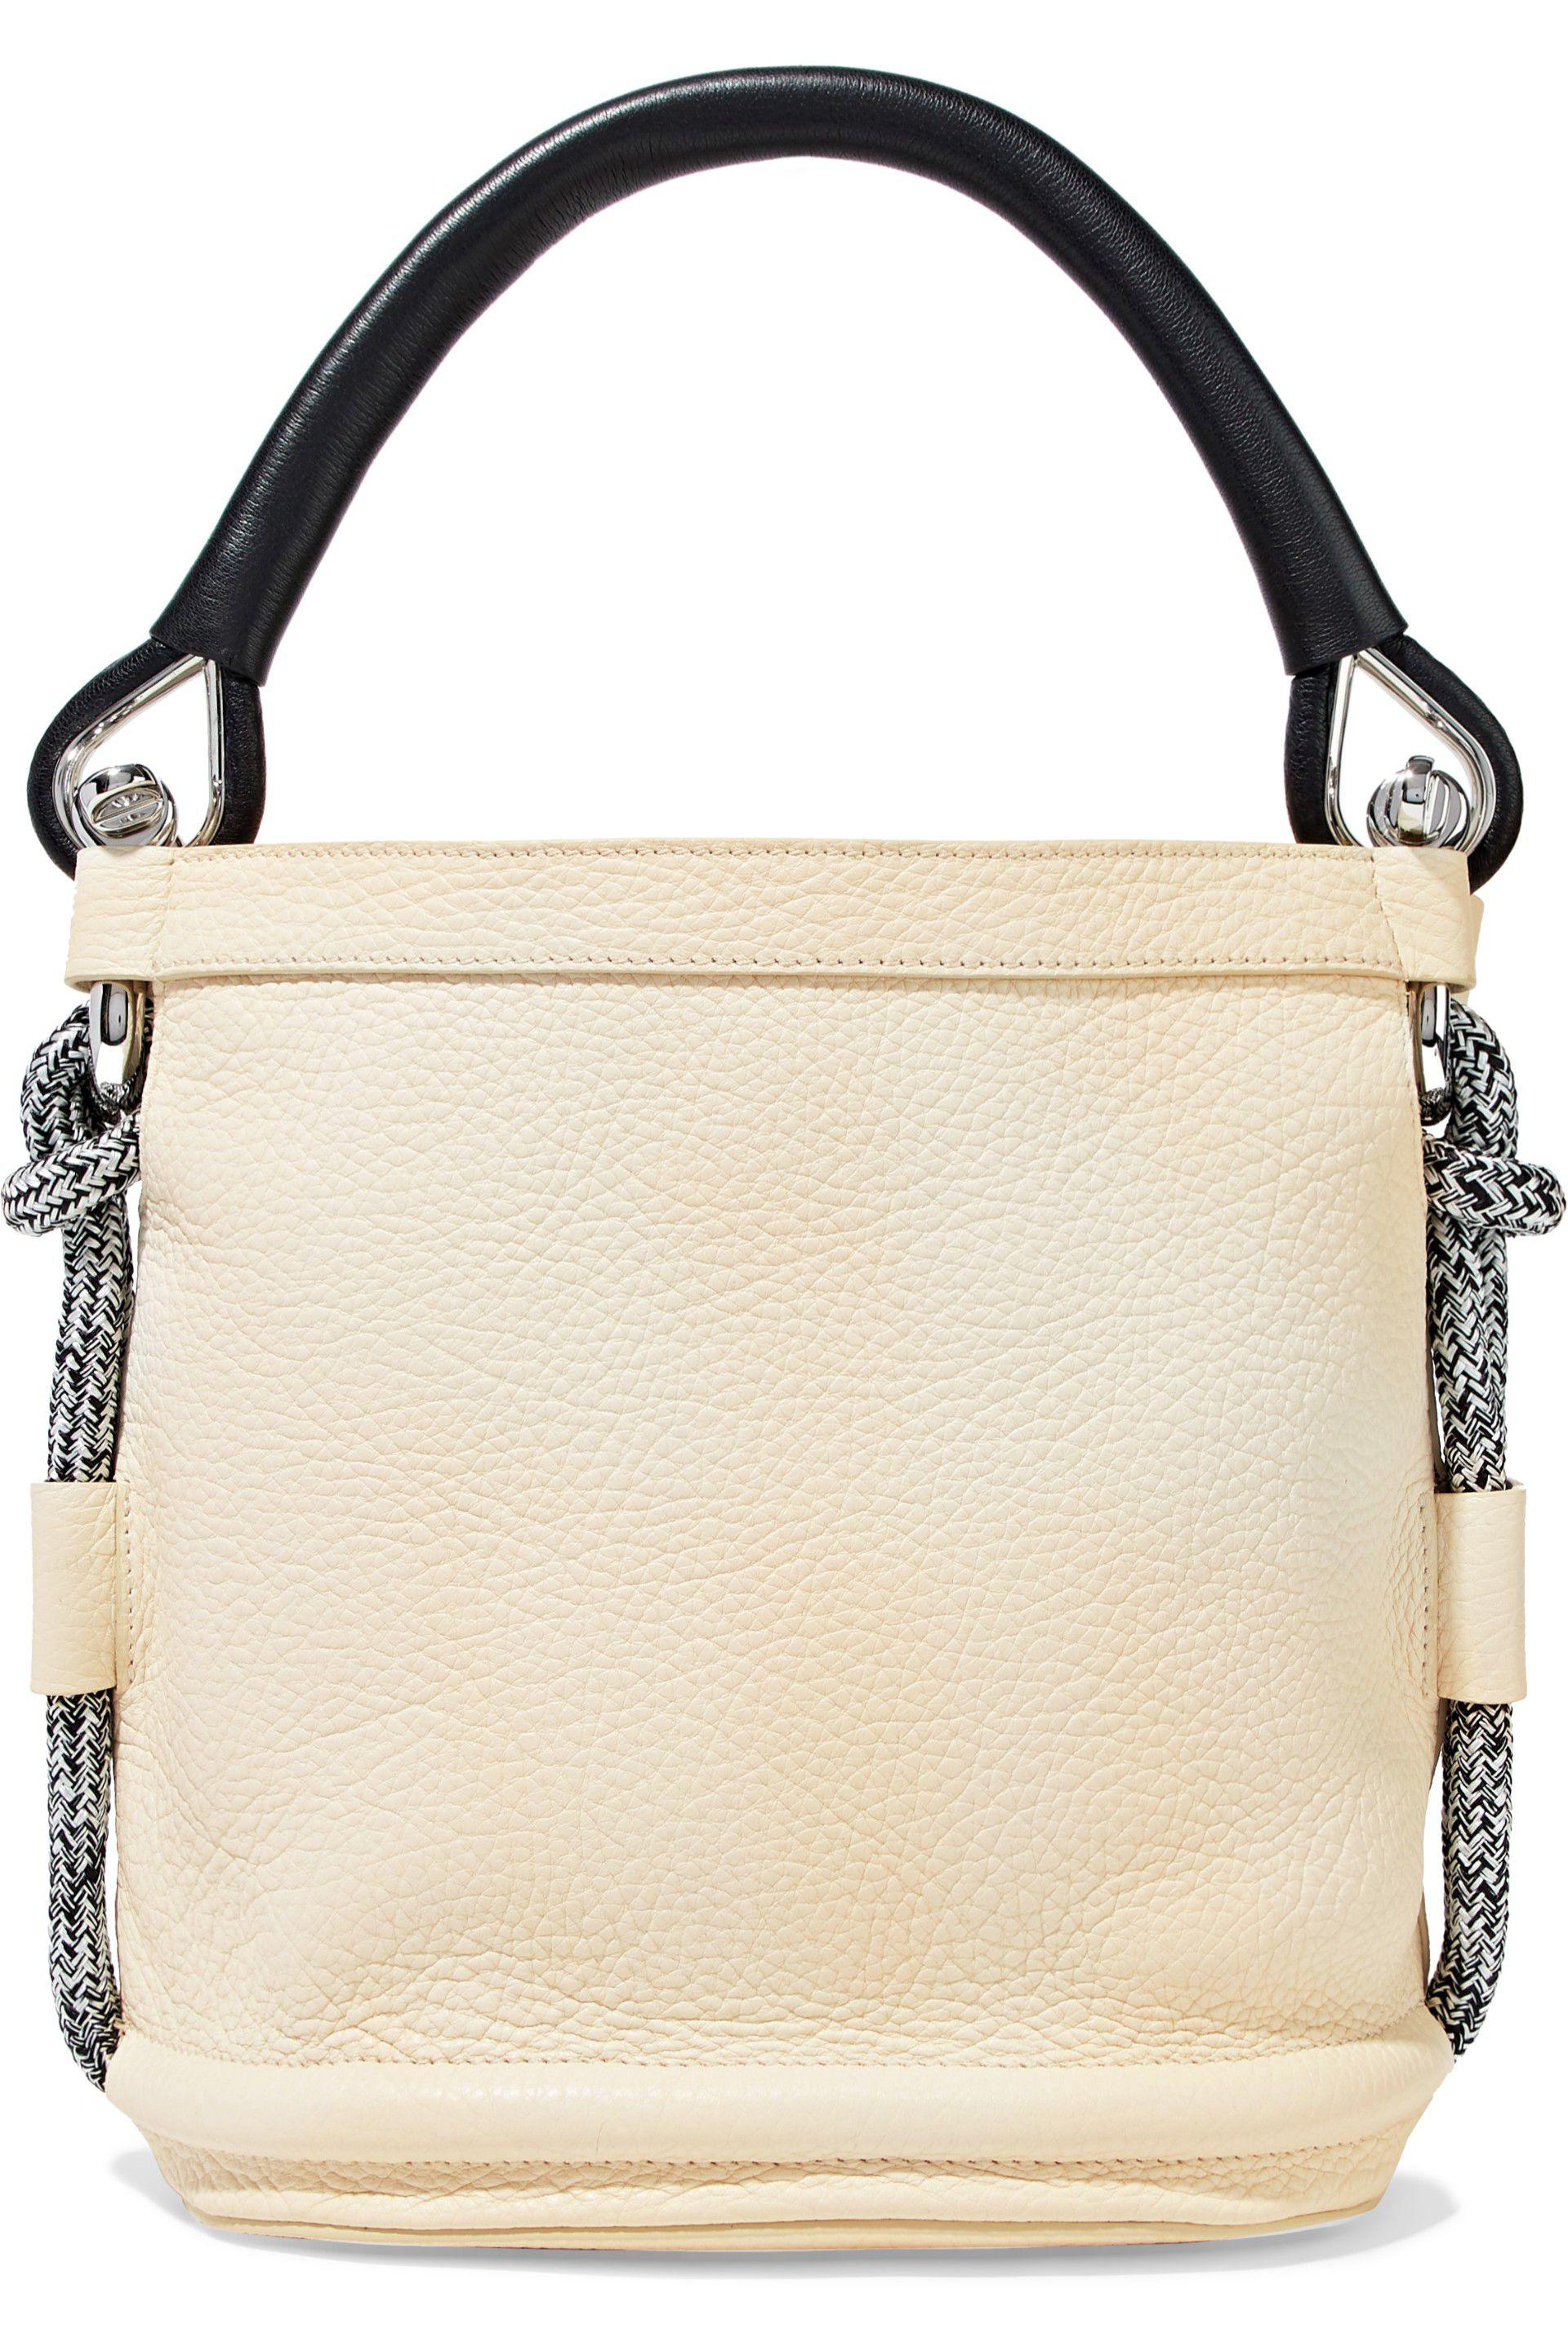 78007fde1889 Acne Studios Bertha Two-tone Textured-leather Bucket Bag in White - Lyst